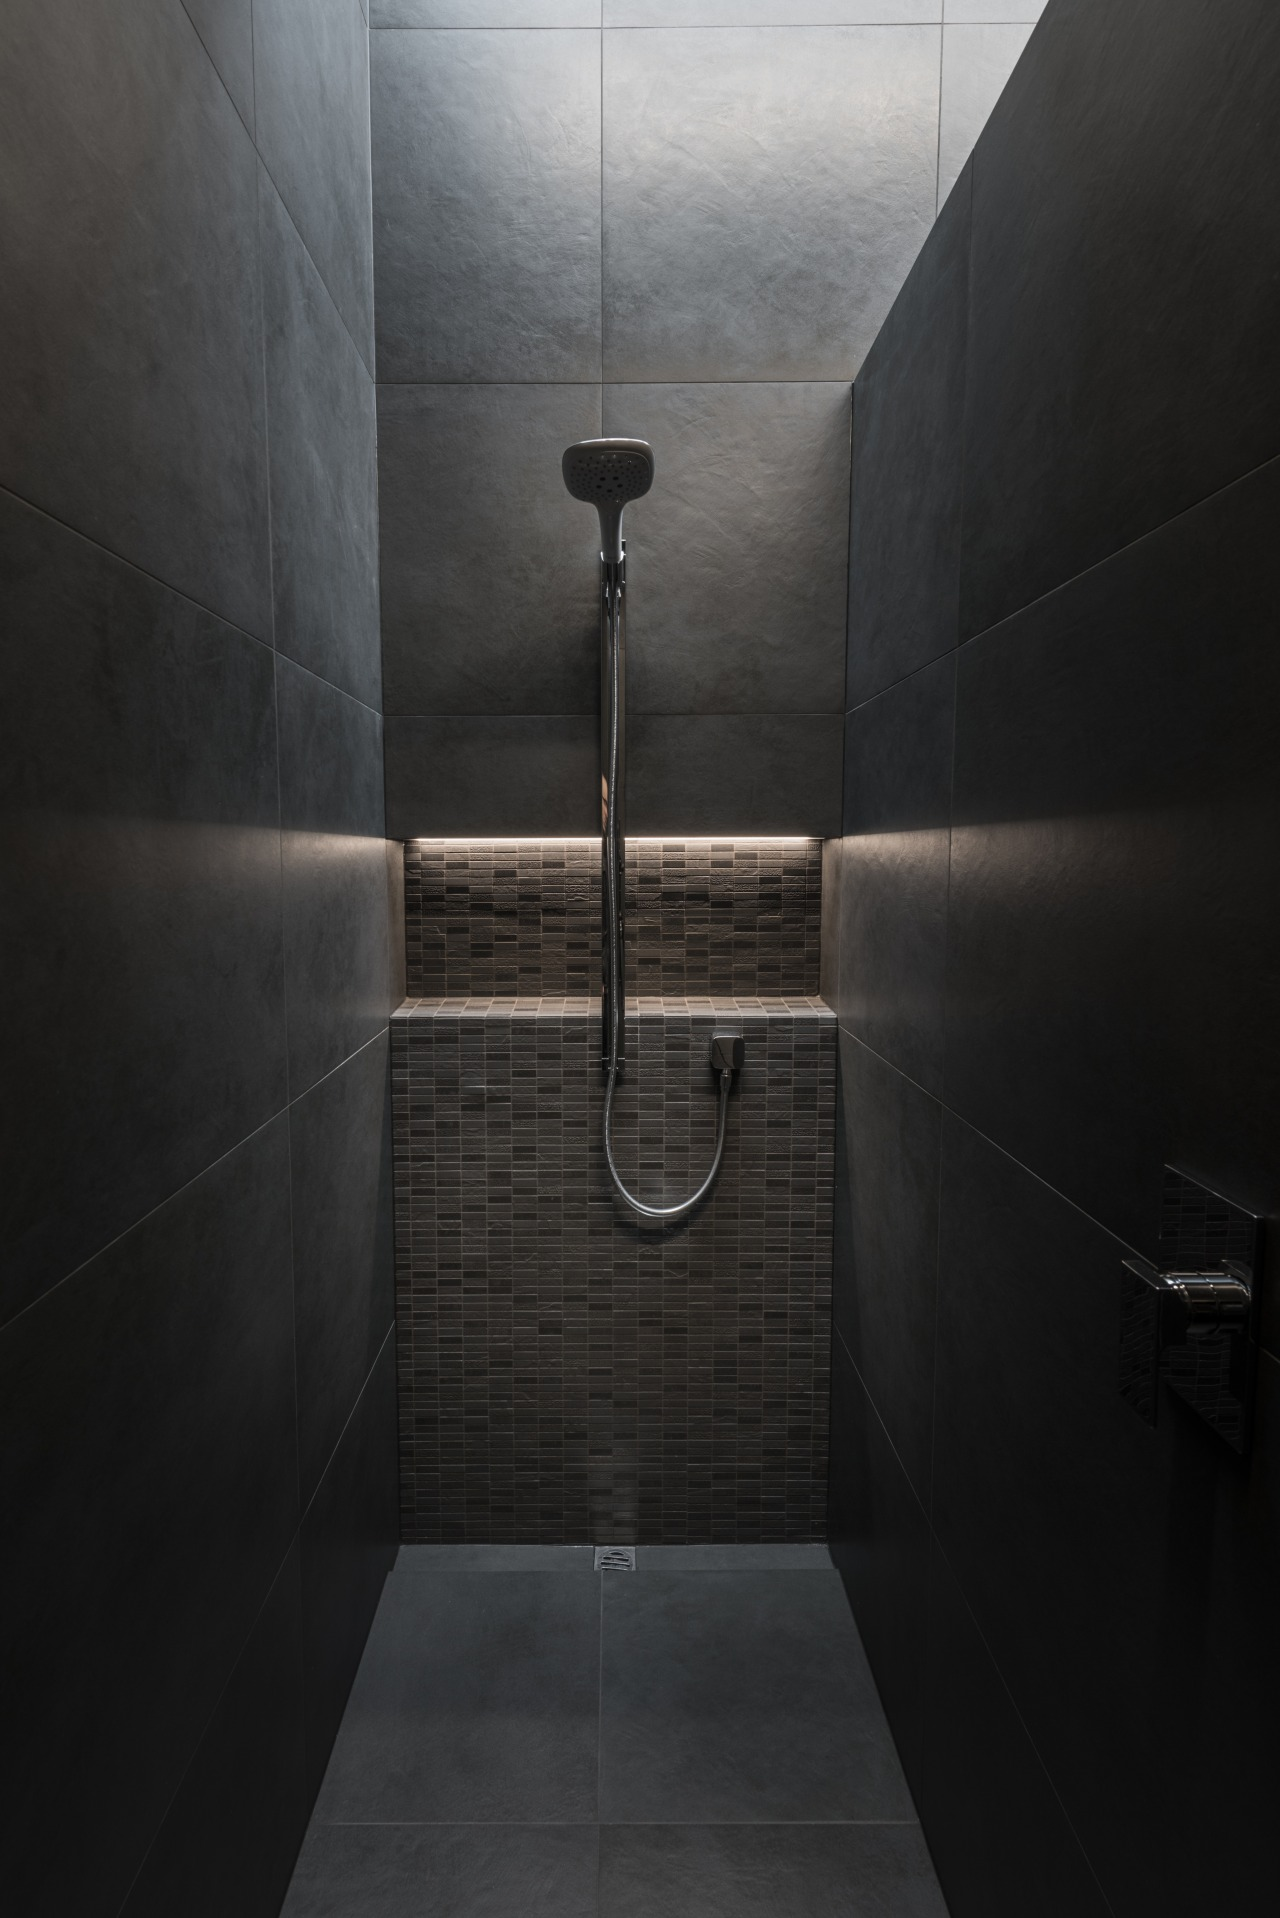 The layout incorporates a practical and private shower architecture, bathroom, black, concrete, floor, flooring, interior design, line, plumbing fixture, room, shower, tile, black